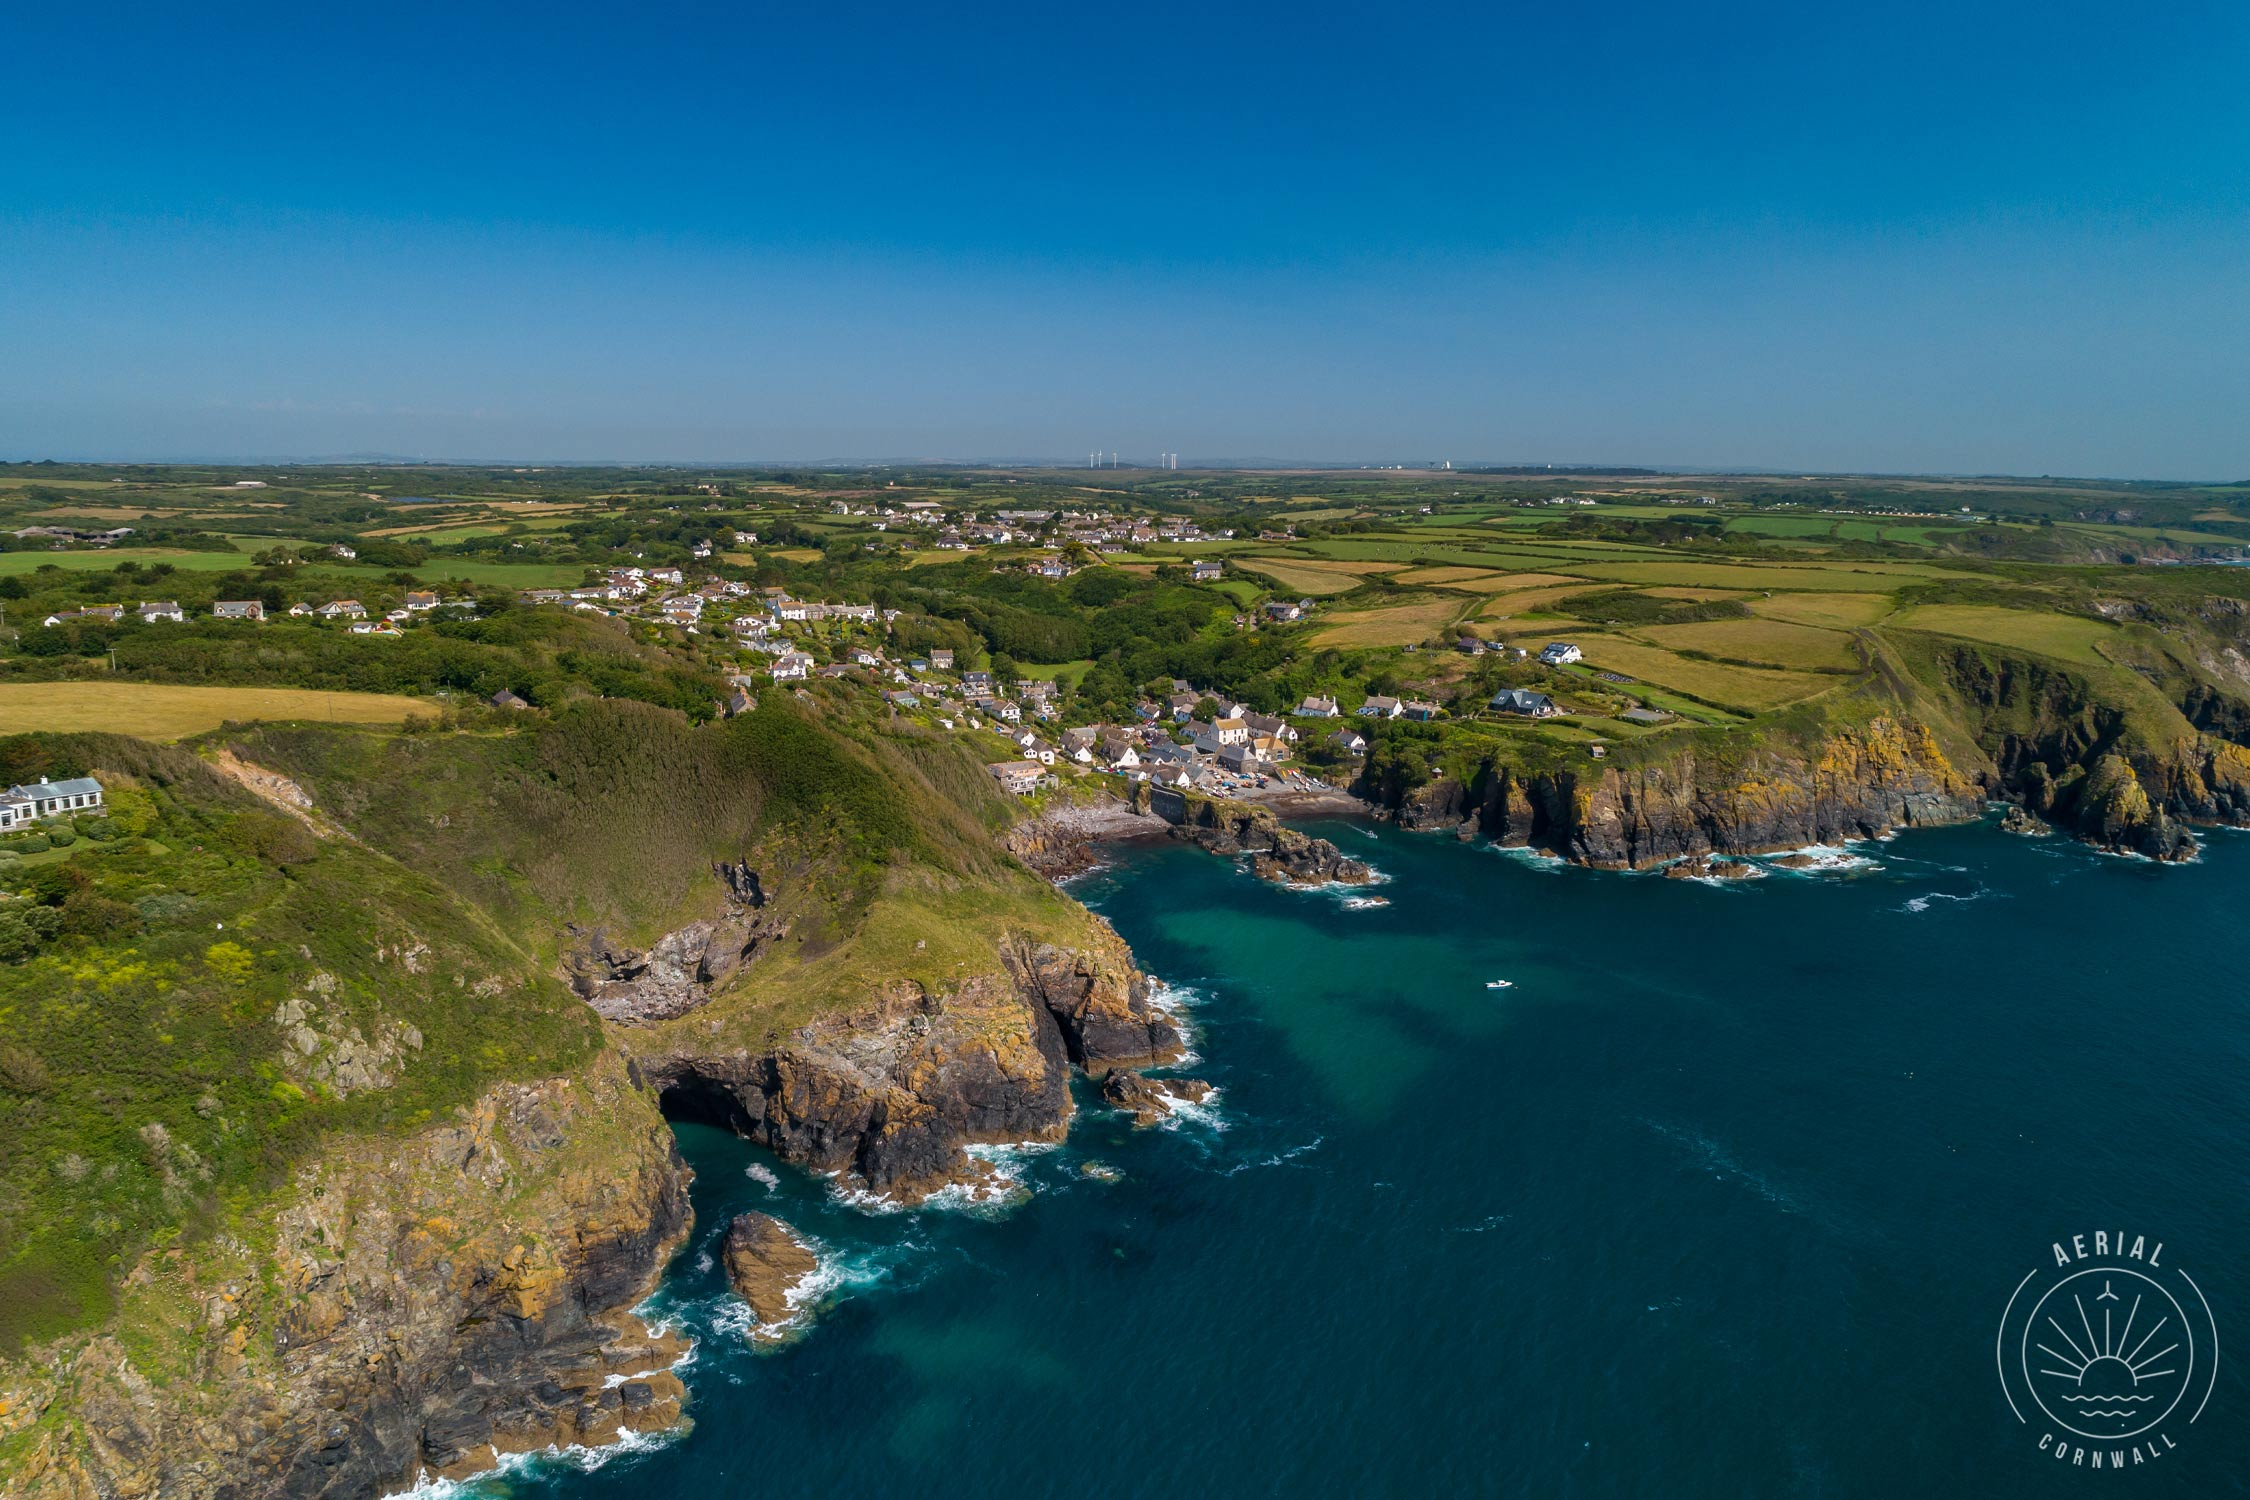 Location: Cadgwith Cove